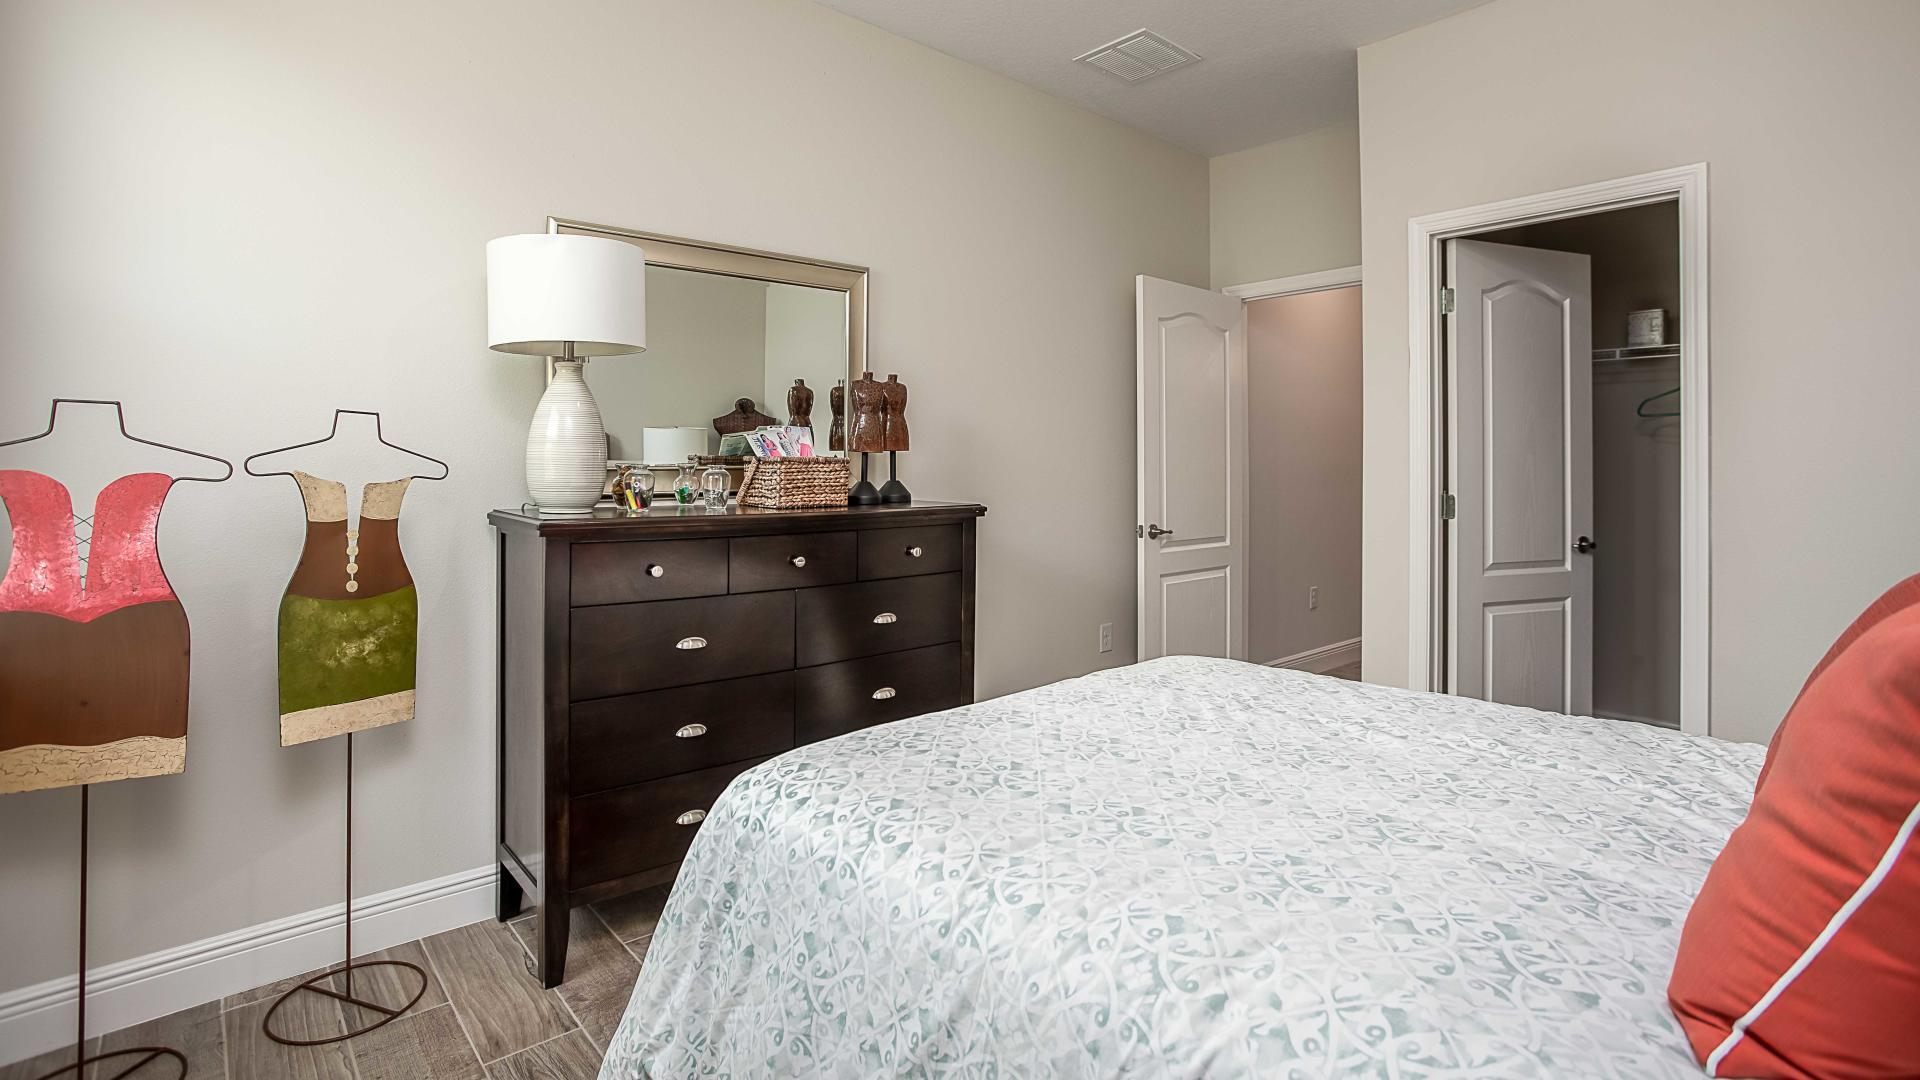 Bedroom featured in the Sienna By Maronda Homes in Melbourne, FL